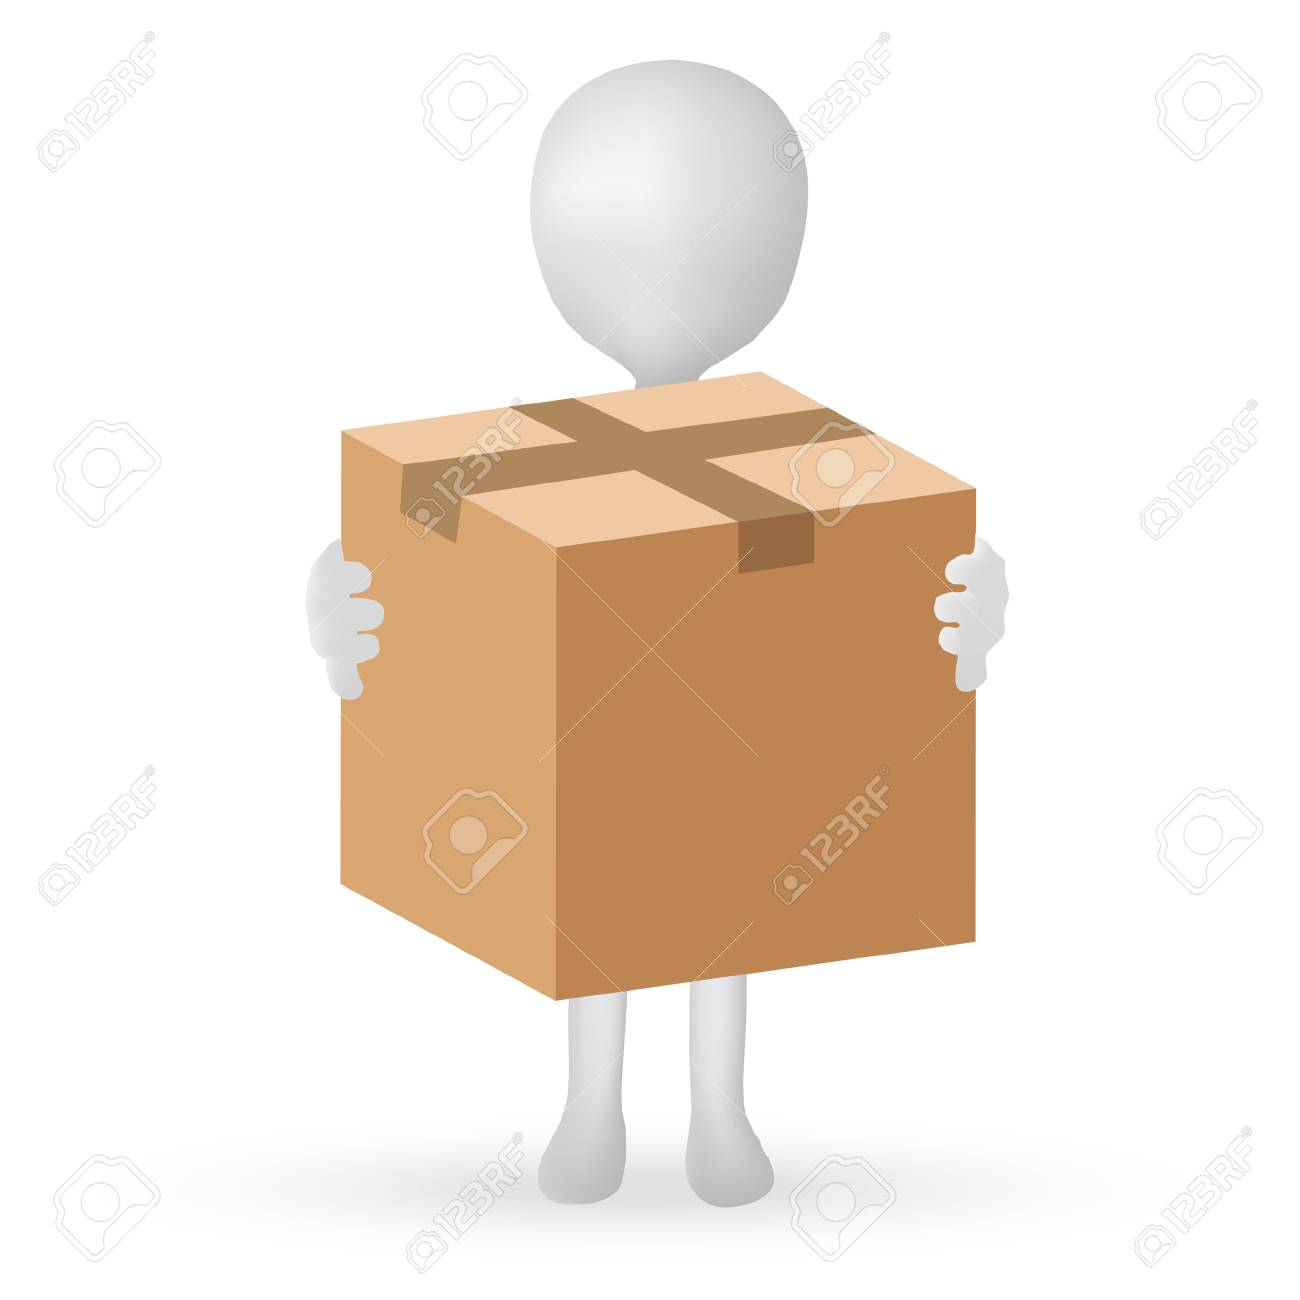 EPS Vector 10 - small 3d man hands holding a box Stock Vector - 18586810